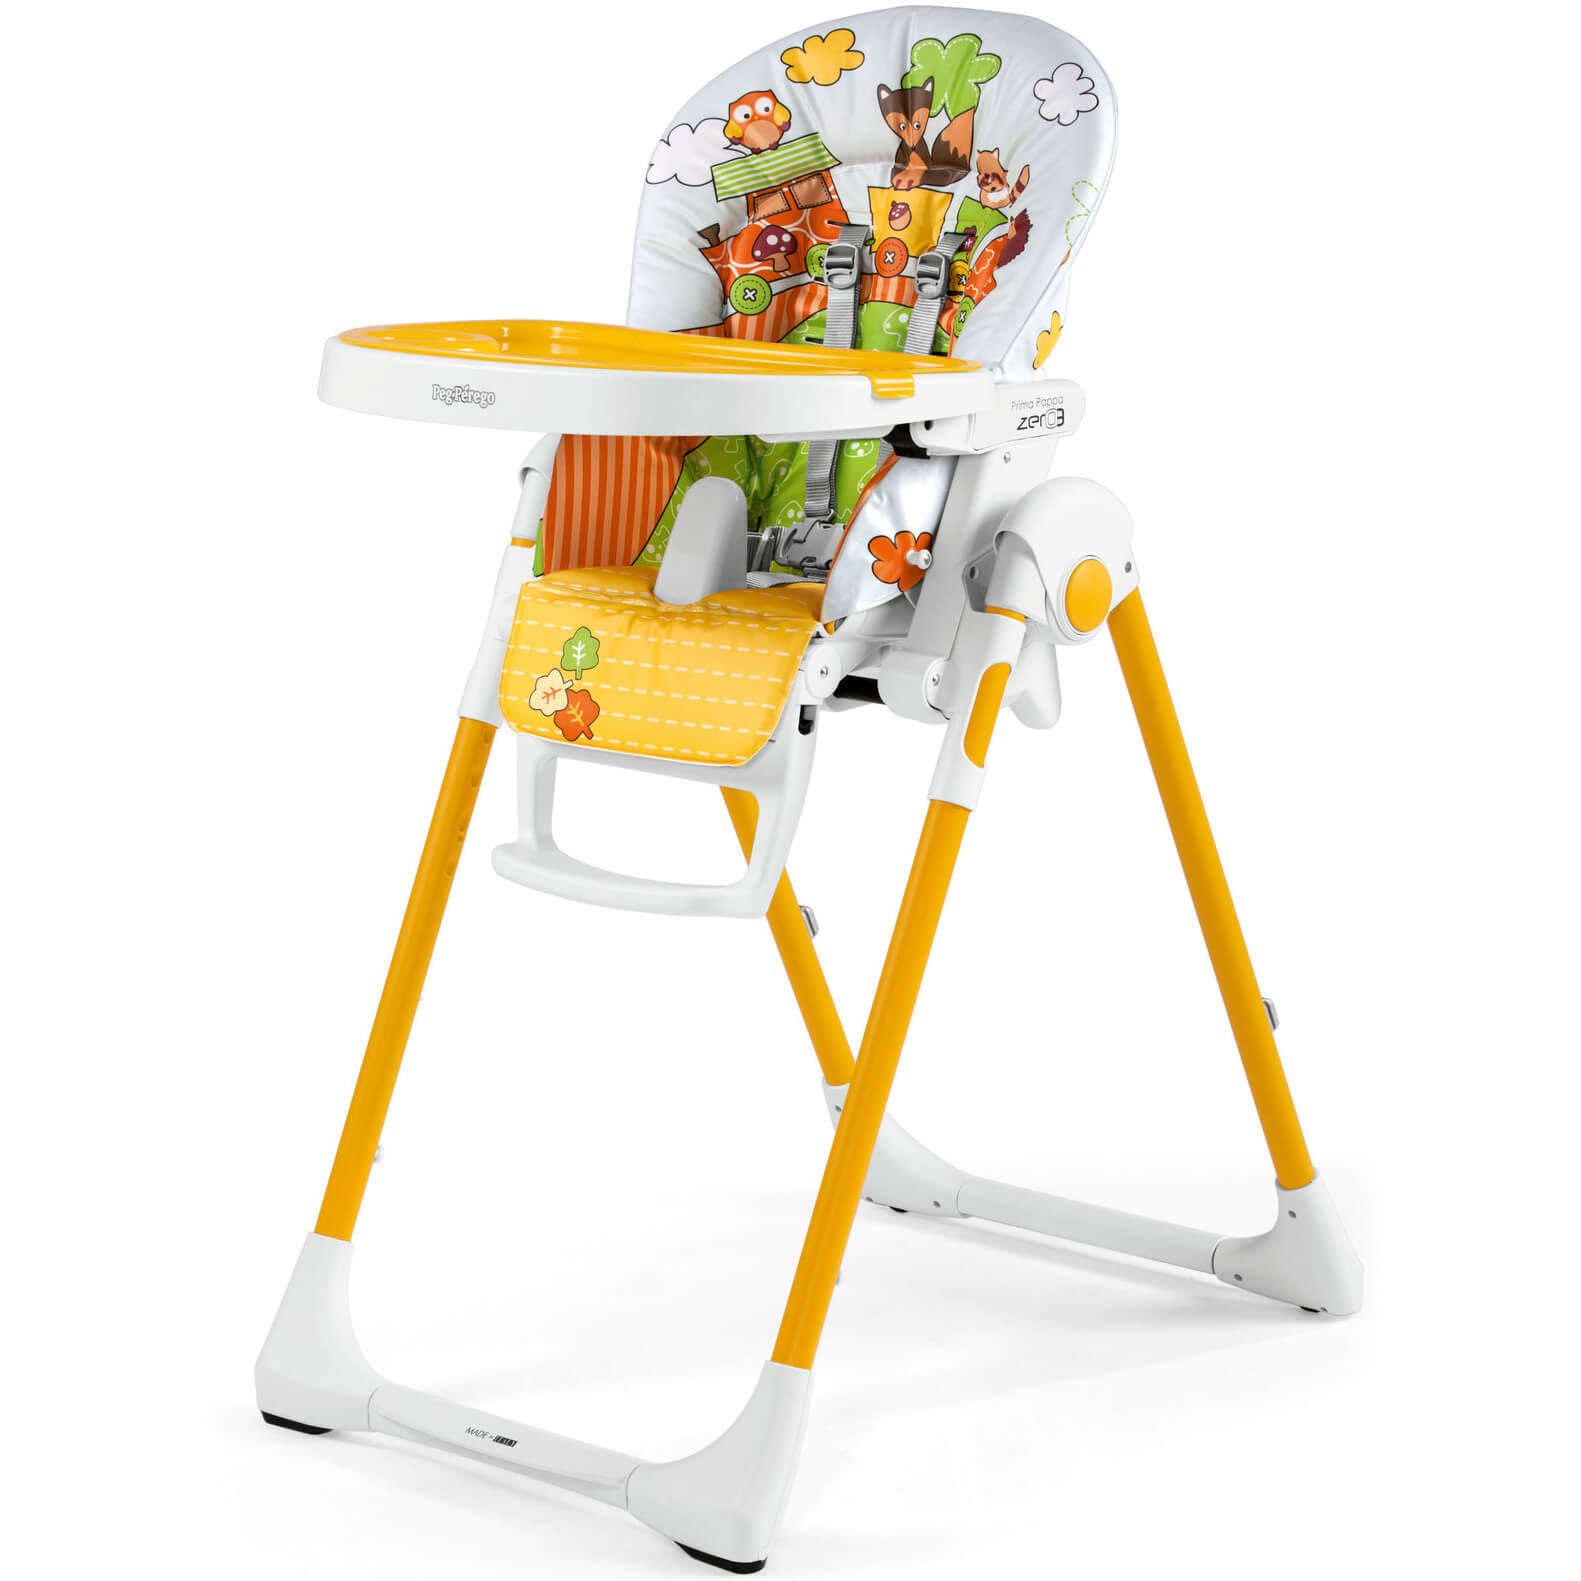 Chair High Chair Peg Perego Prima Pappa Zero3 Fox Friends High Chair Cradle And Chair